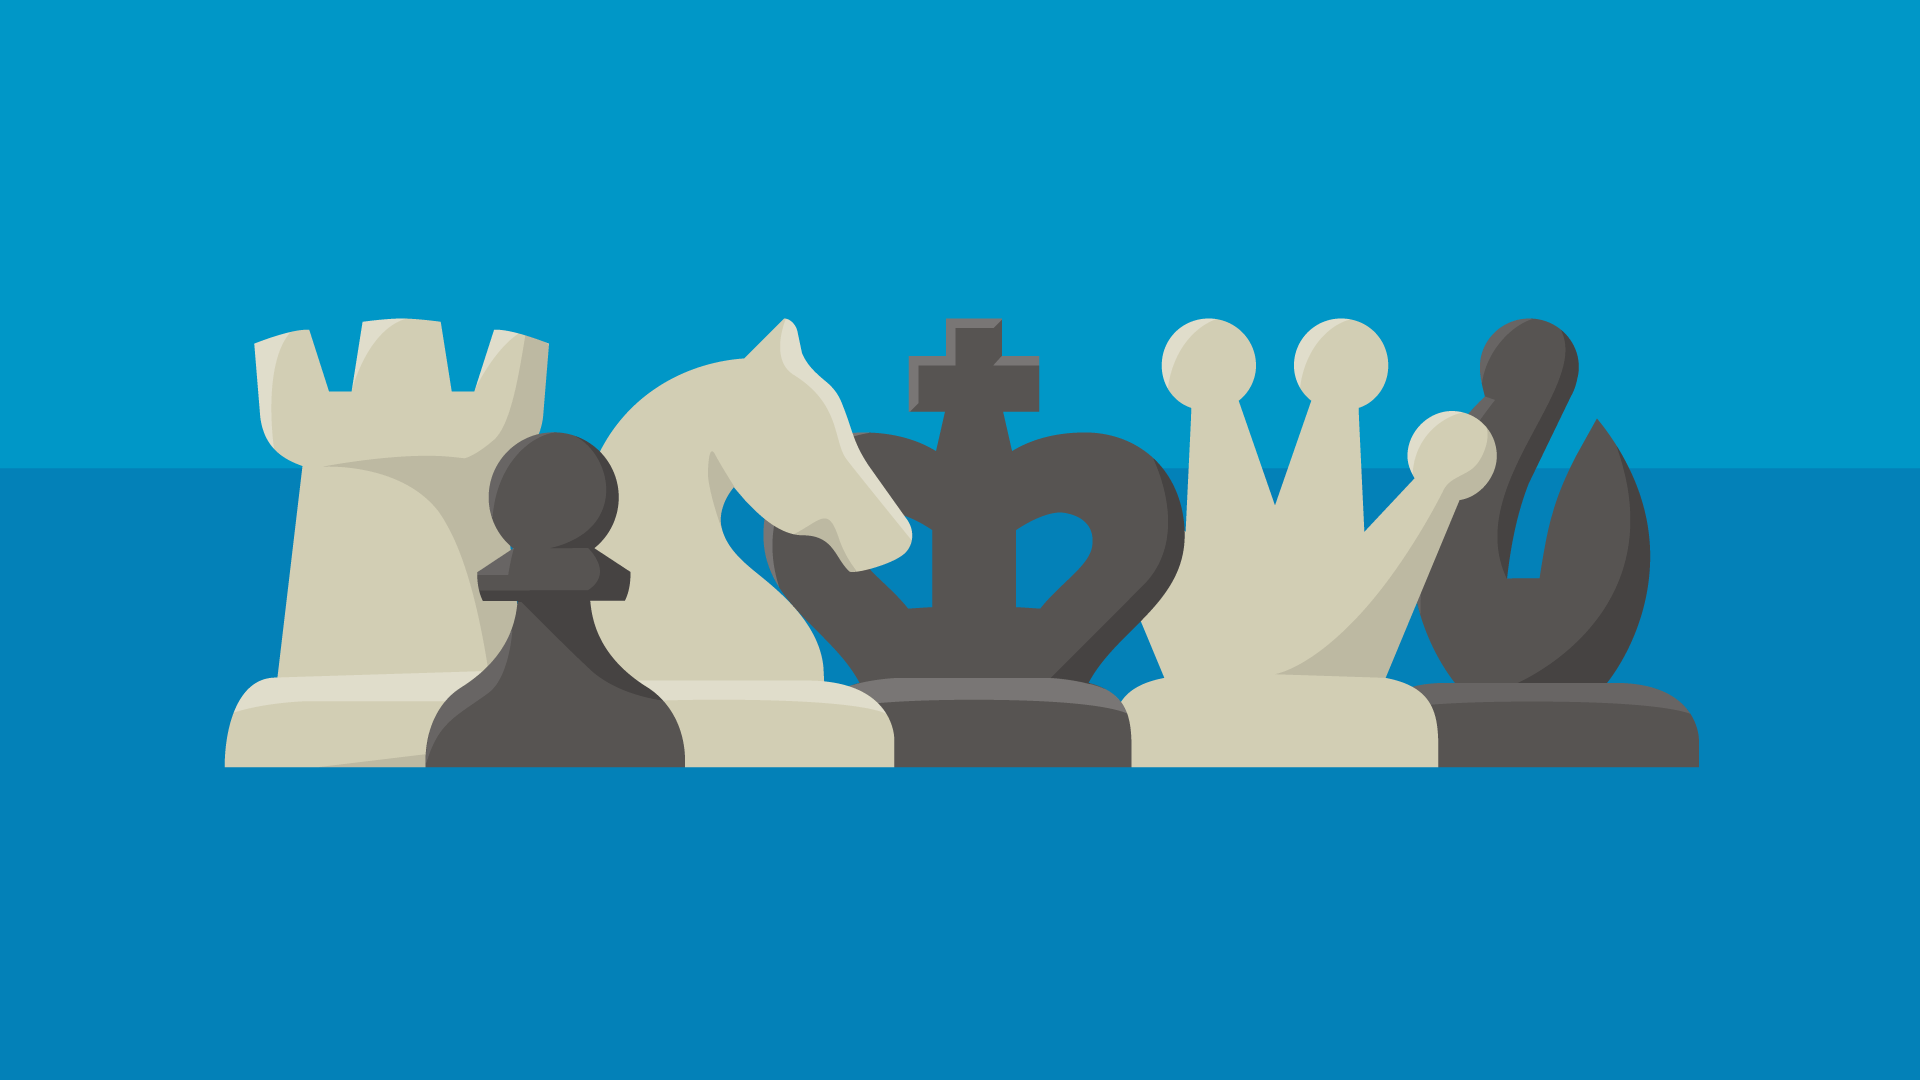 Chess Pieces Names, Moves & Values - Chess.com